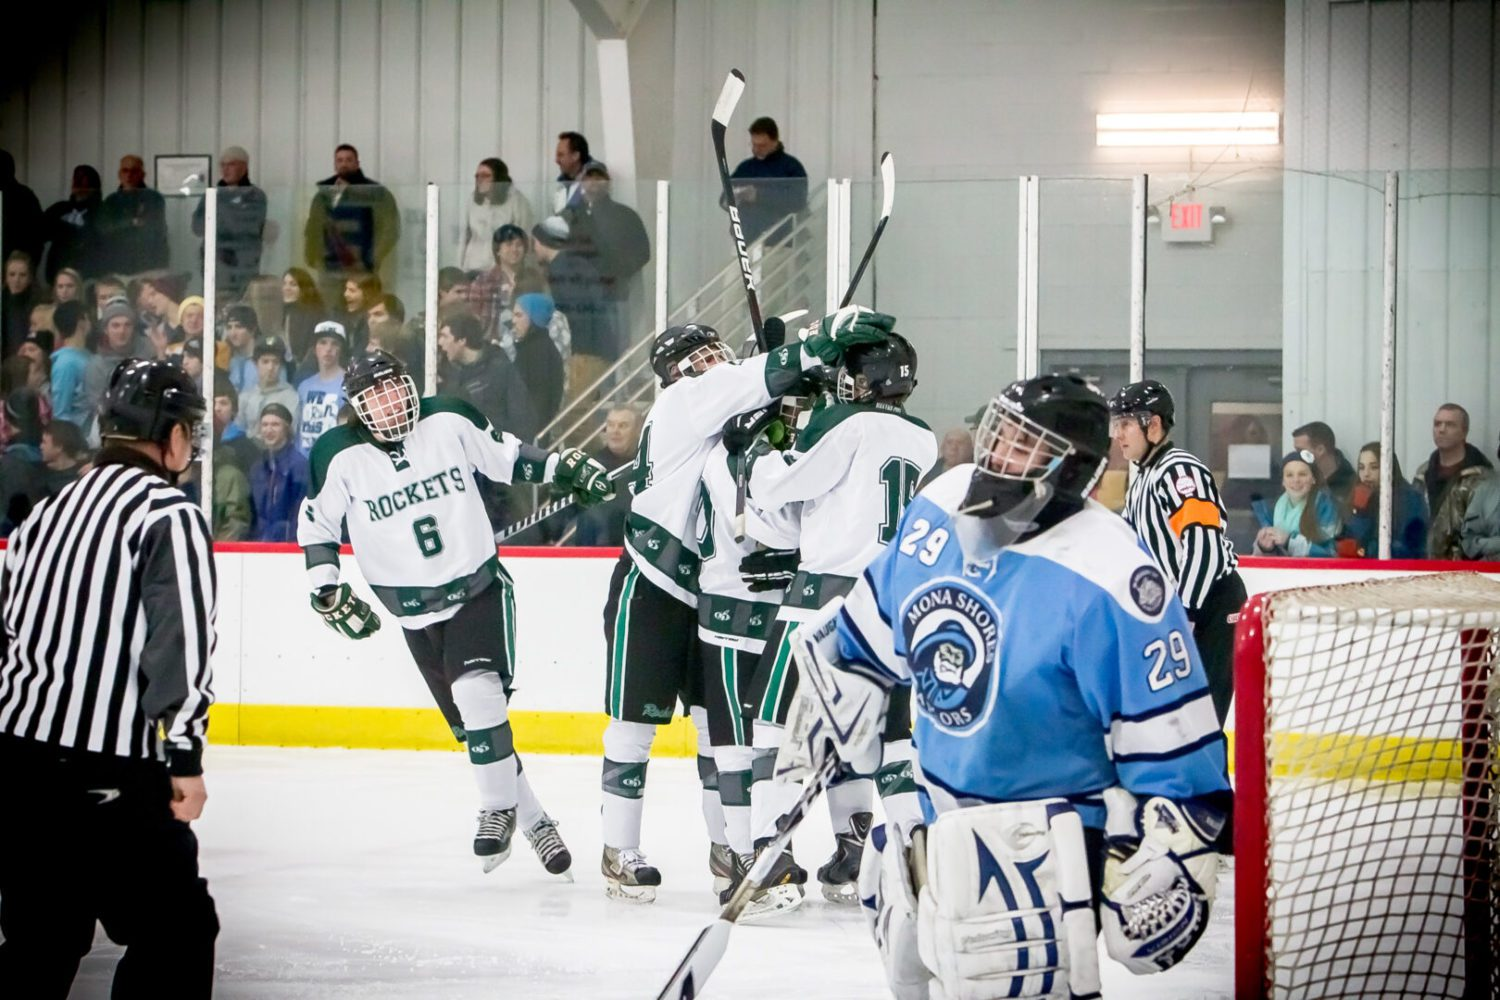 Reeths-Puffer hockey has all the answers in 5-0 victory over rival Mona Shores